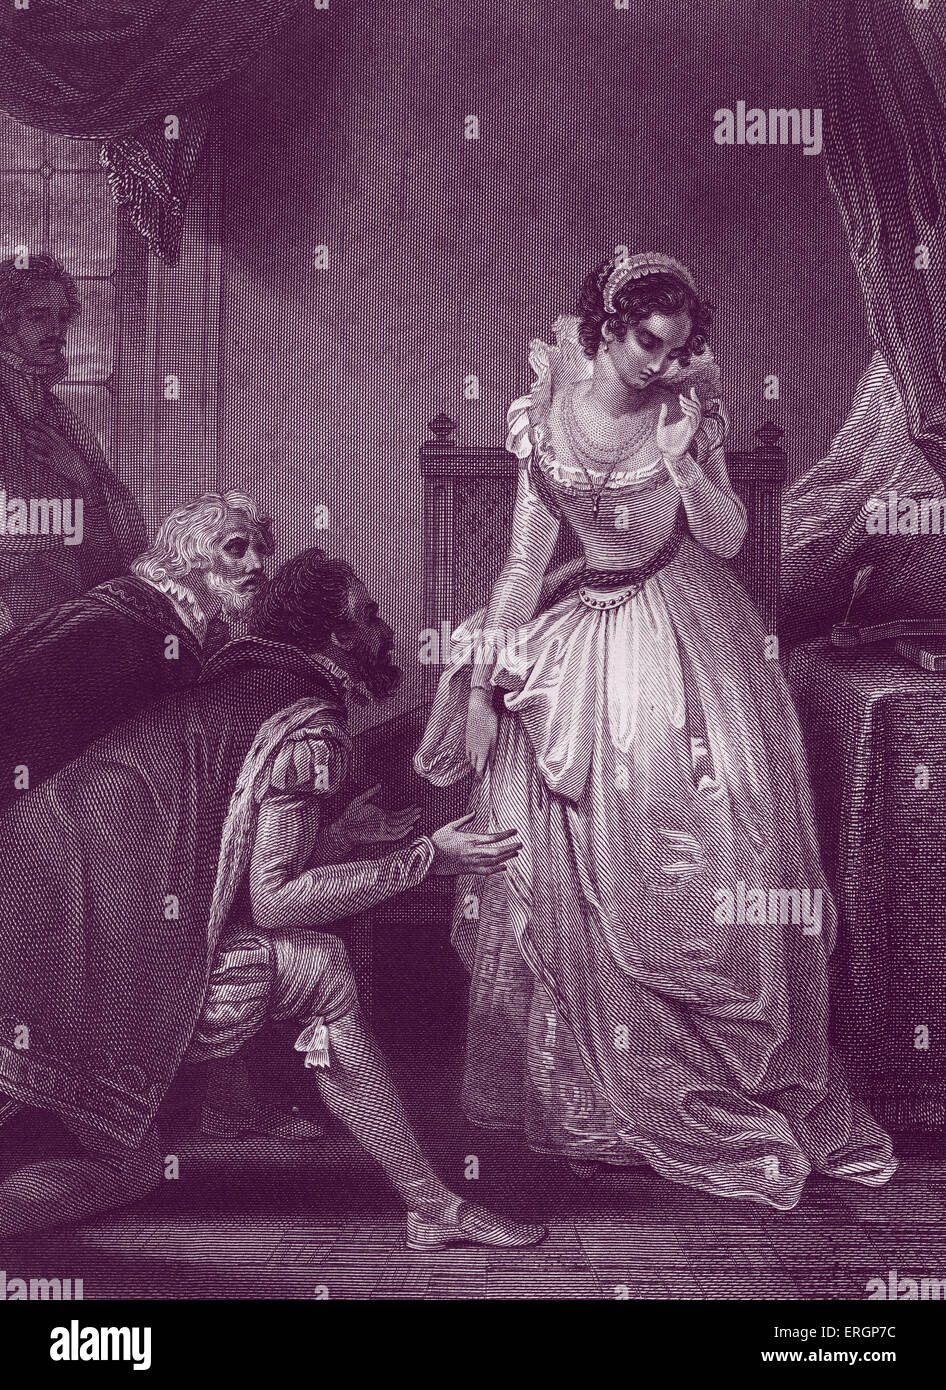 Lady Jane Grey declining the crown. Also known as the 'The Nine Days Queen', Lady Jane Grey  (1536-1554) - Stock Image